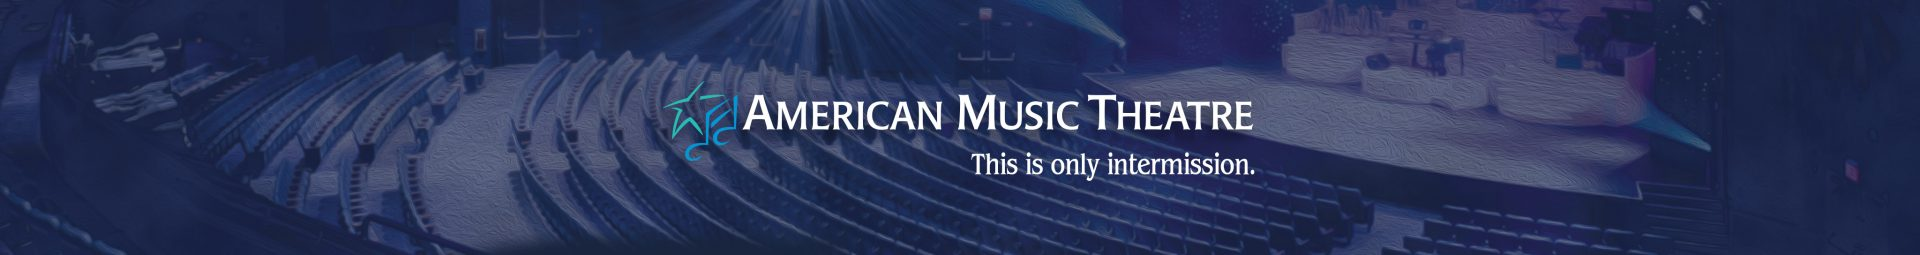 American Music Theatre Christmas Show 2020 2020 AMT Christmas Show: Deck The Halls ~ Update | American Music